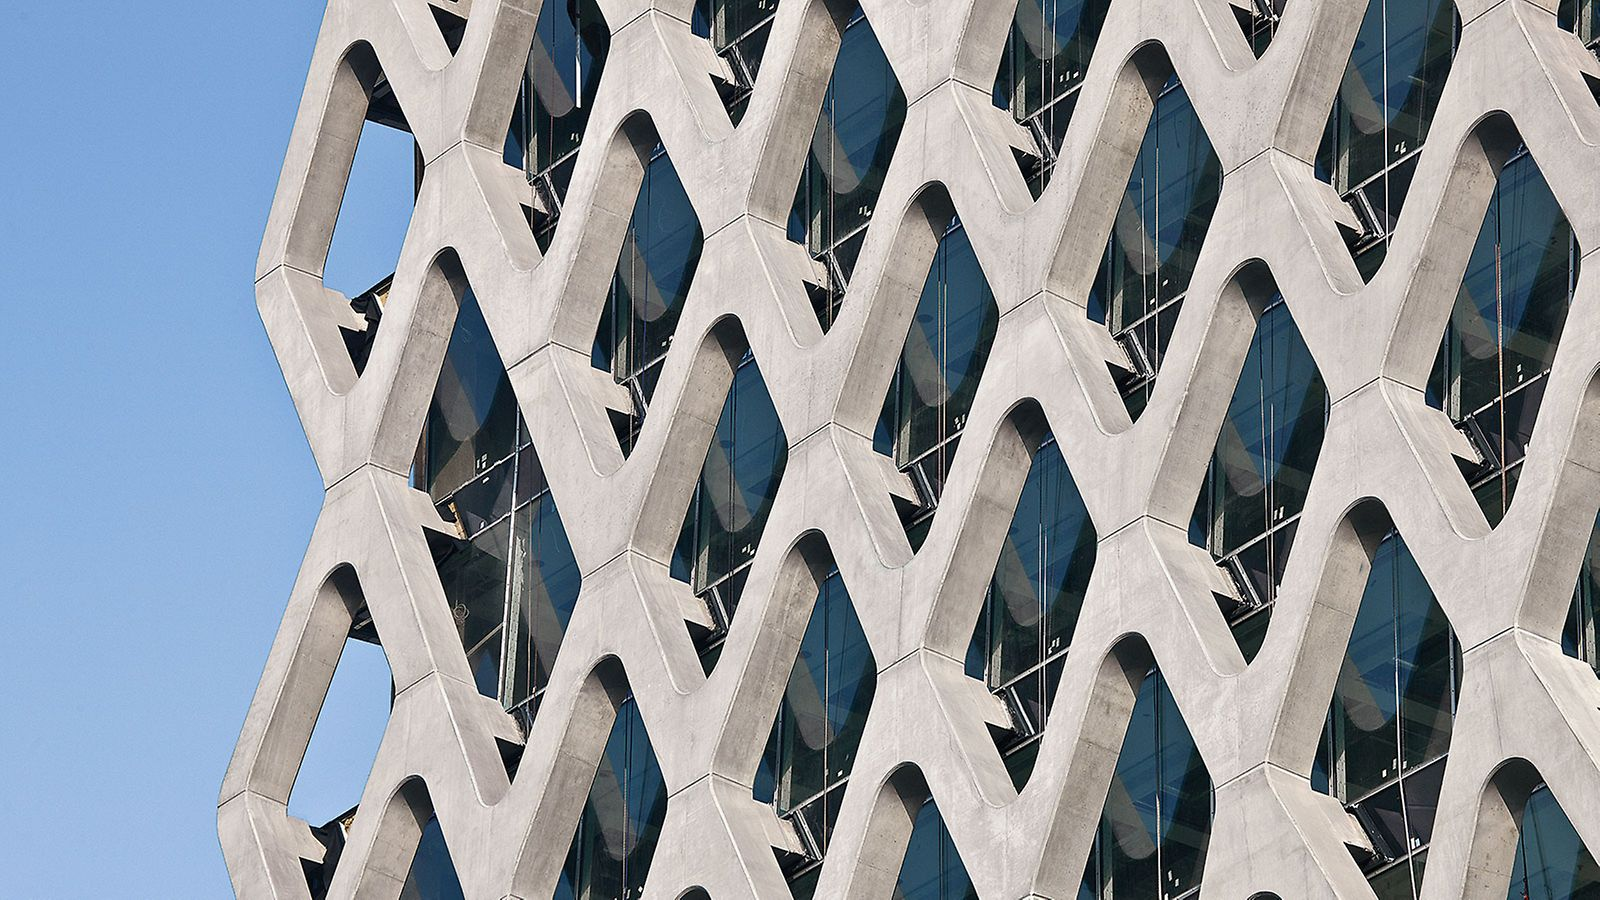 Architectural concrete - The modern-day language of architects